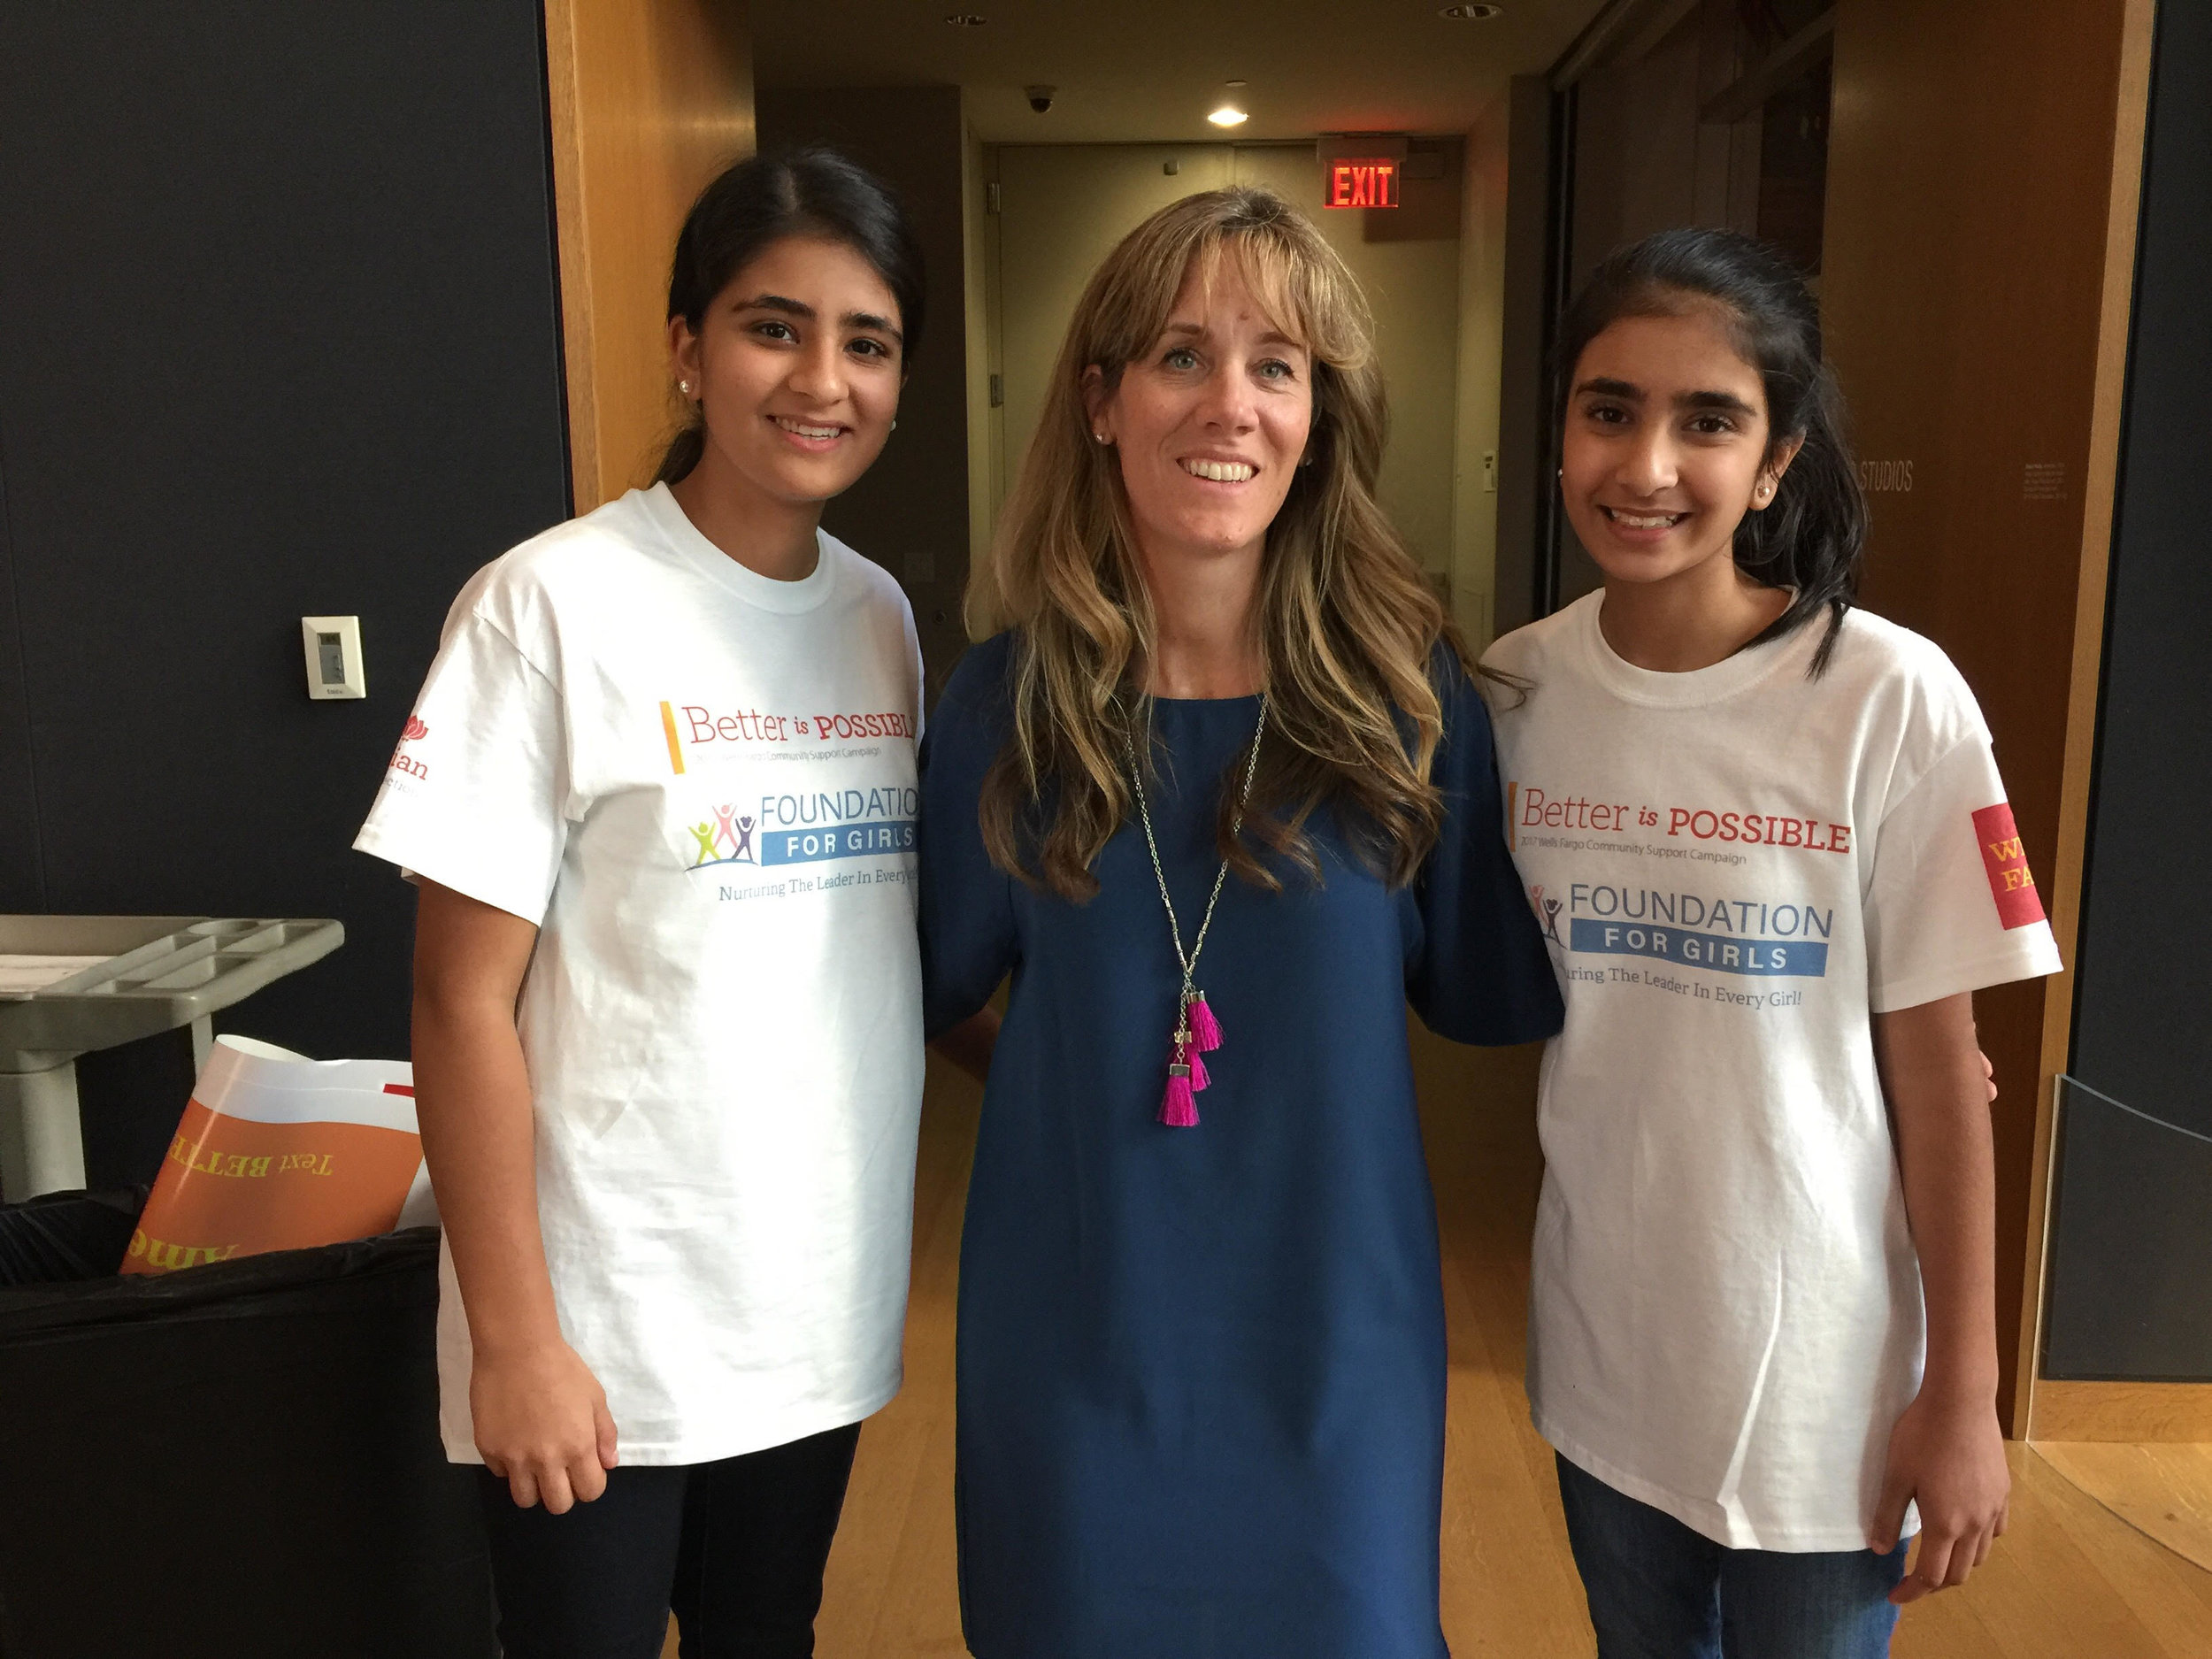 Foundation For Girls Co-Founders Shreya and Sahana Mantha accept the 2017 Better Is Possible sponsorship from Wells Fargo